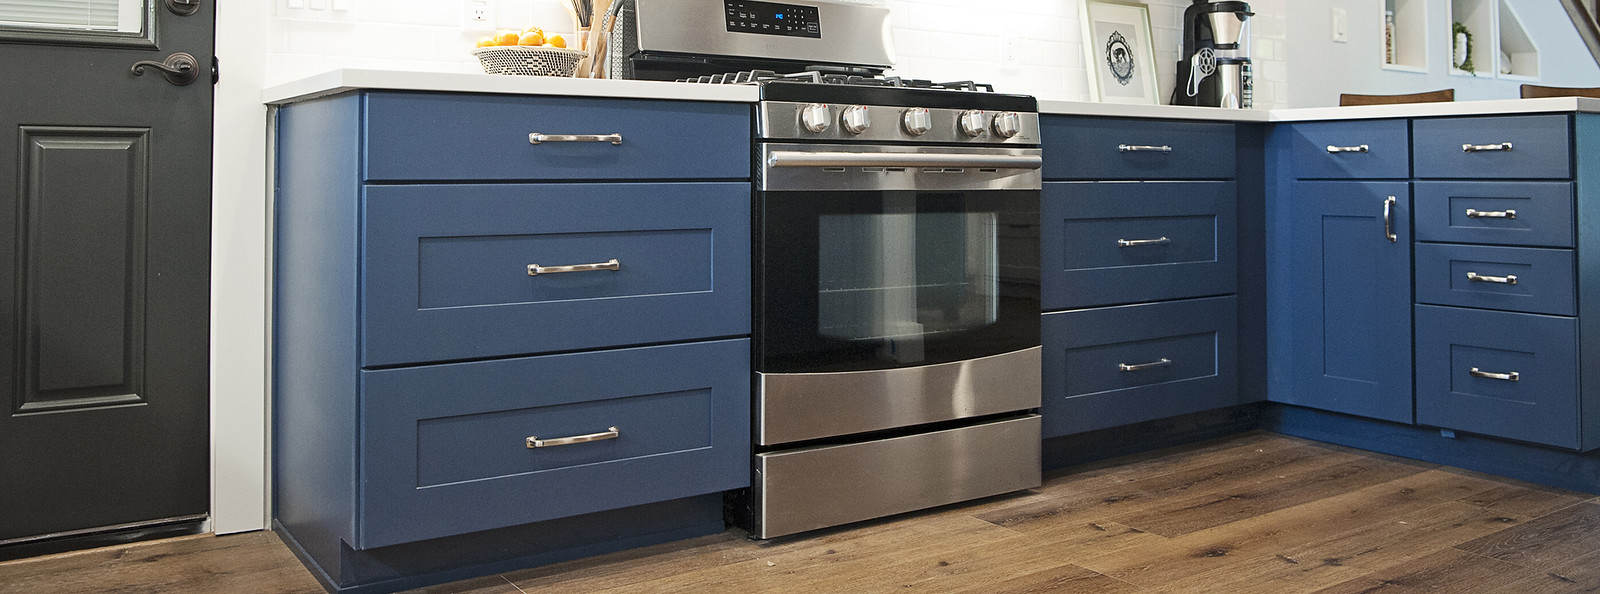 Blue Kitchen Cabinets Trend | Wolf Home Products